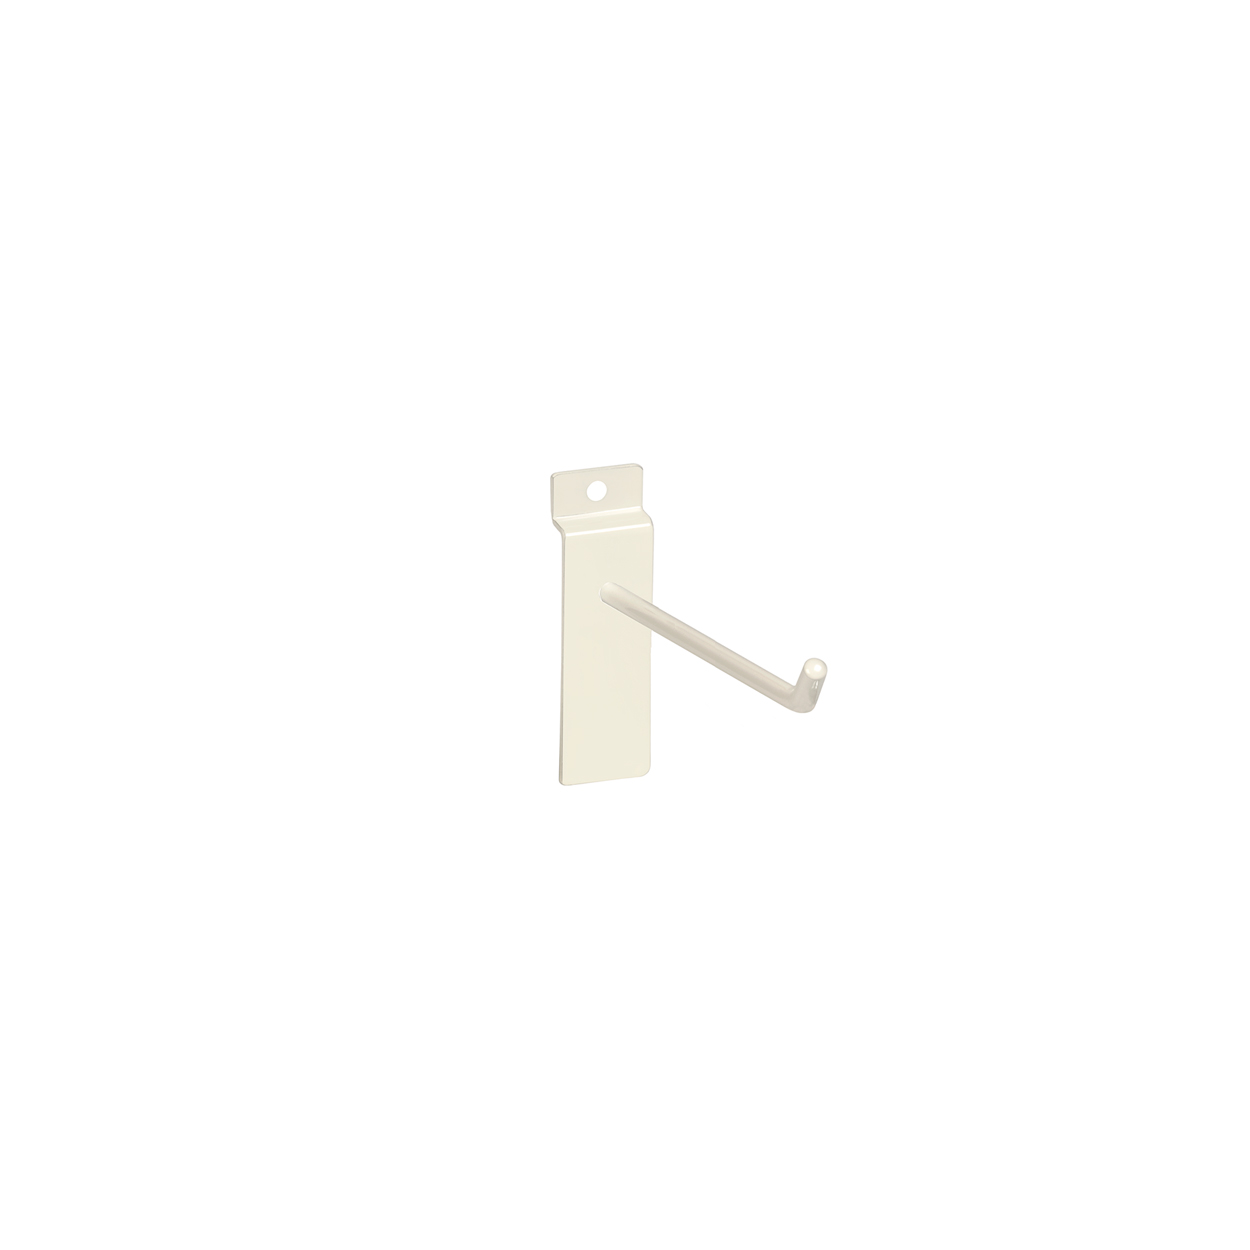 Large White Counter Top Panel Hook. Dim 100L x 5.8mm Diameter